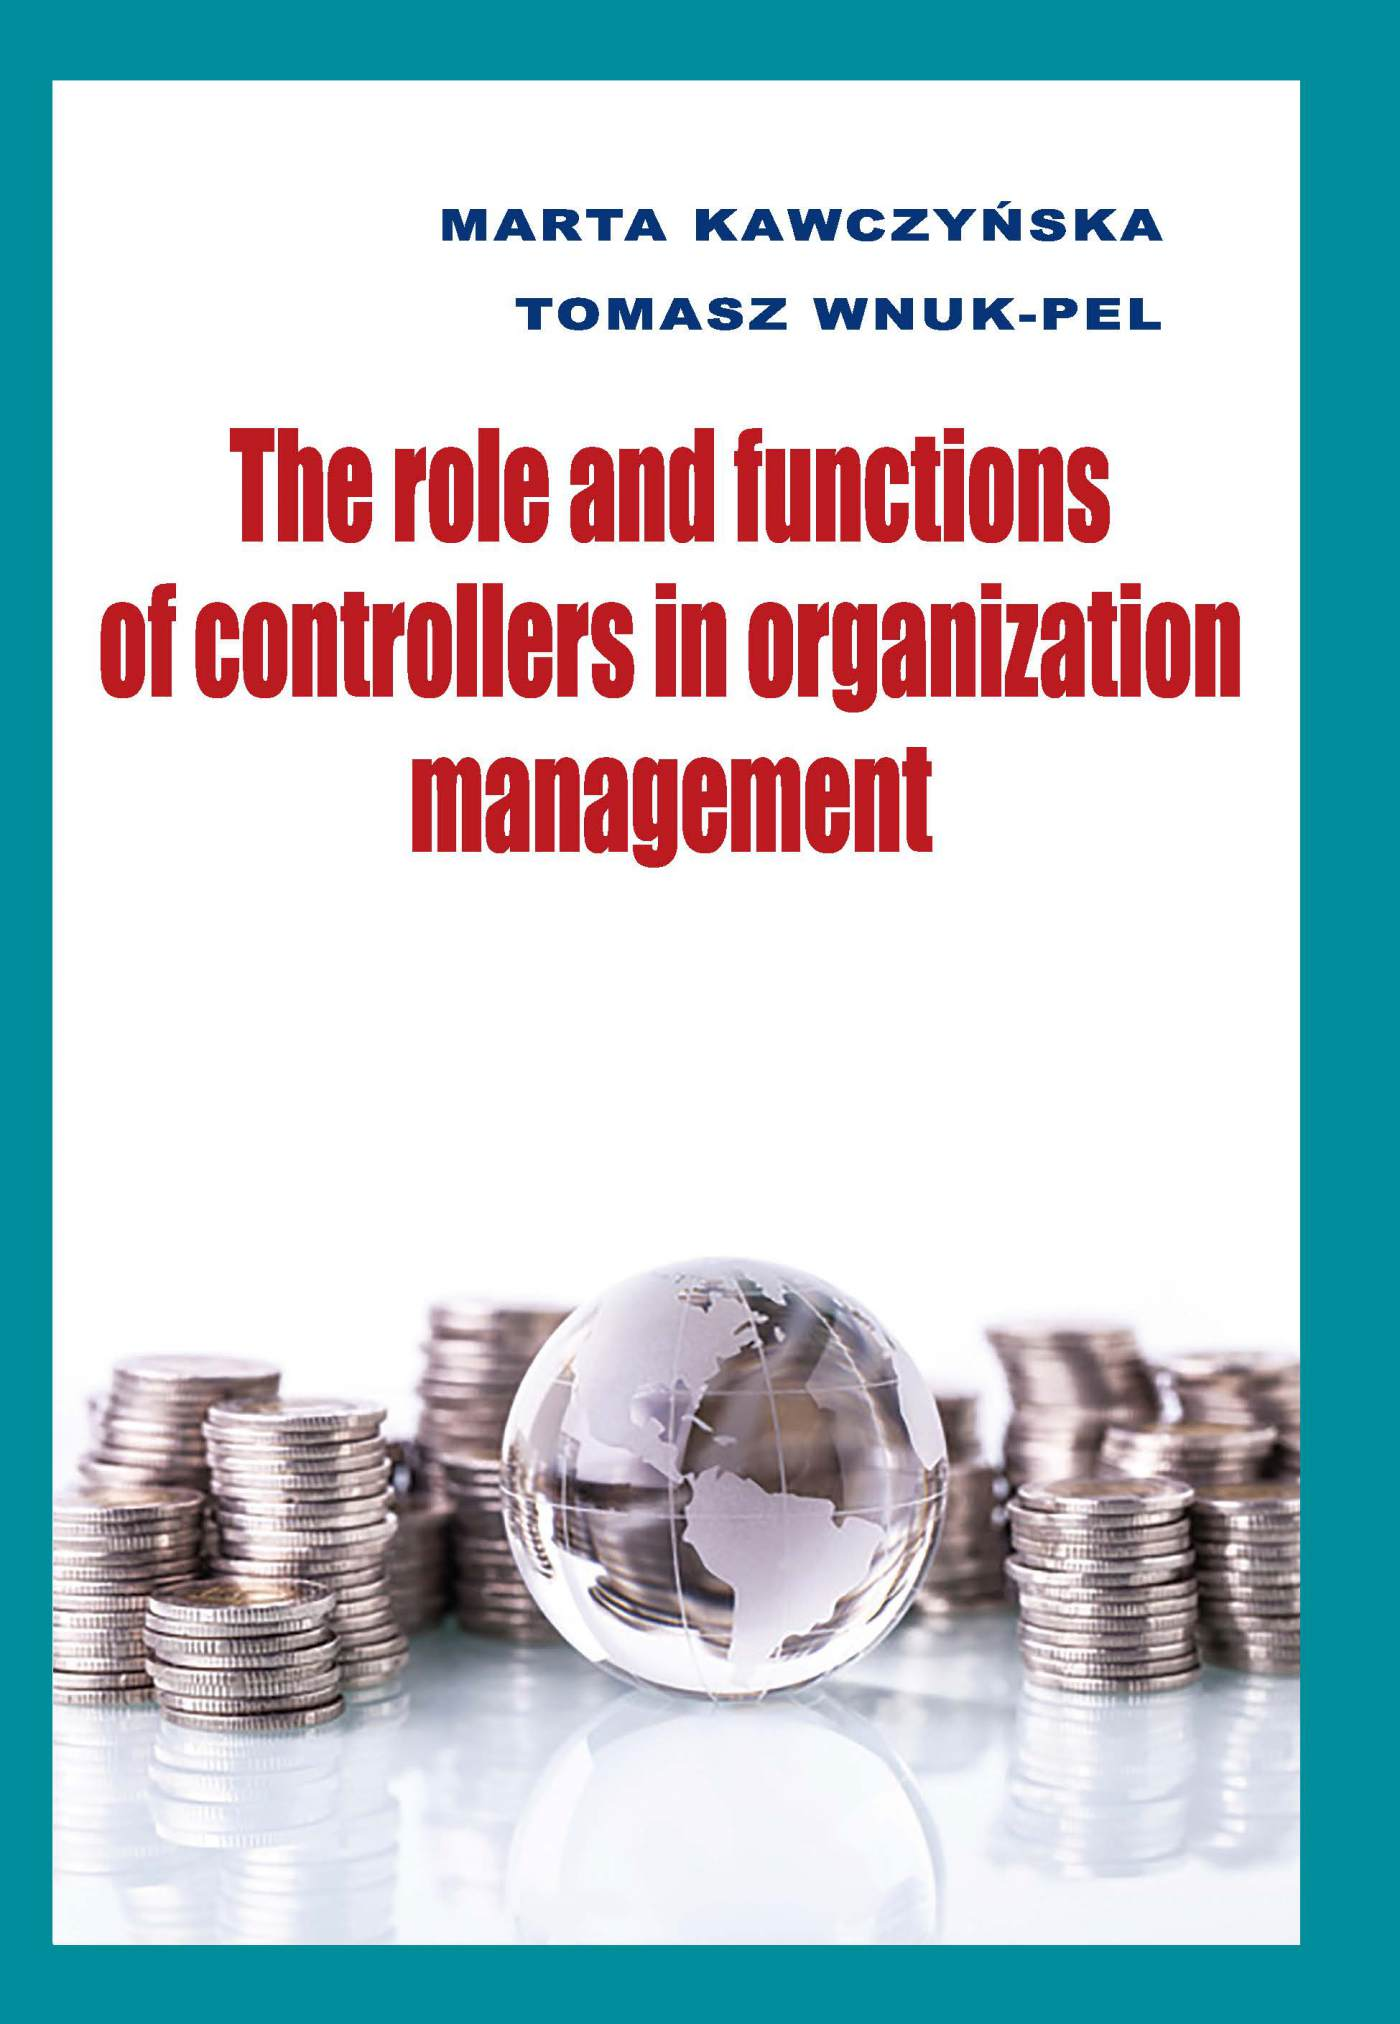 The role and functions of controllers in organization management - Ebook (Książka PDF) do pobrania w formacie PDF